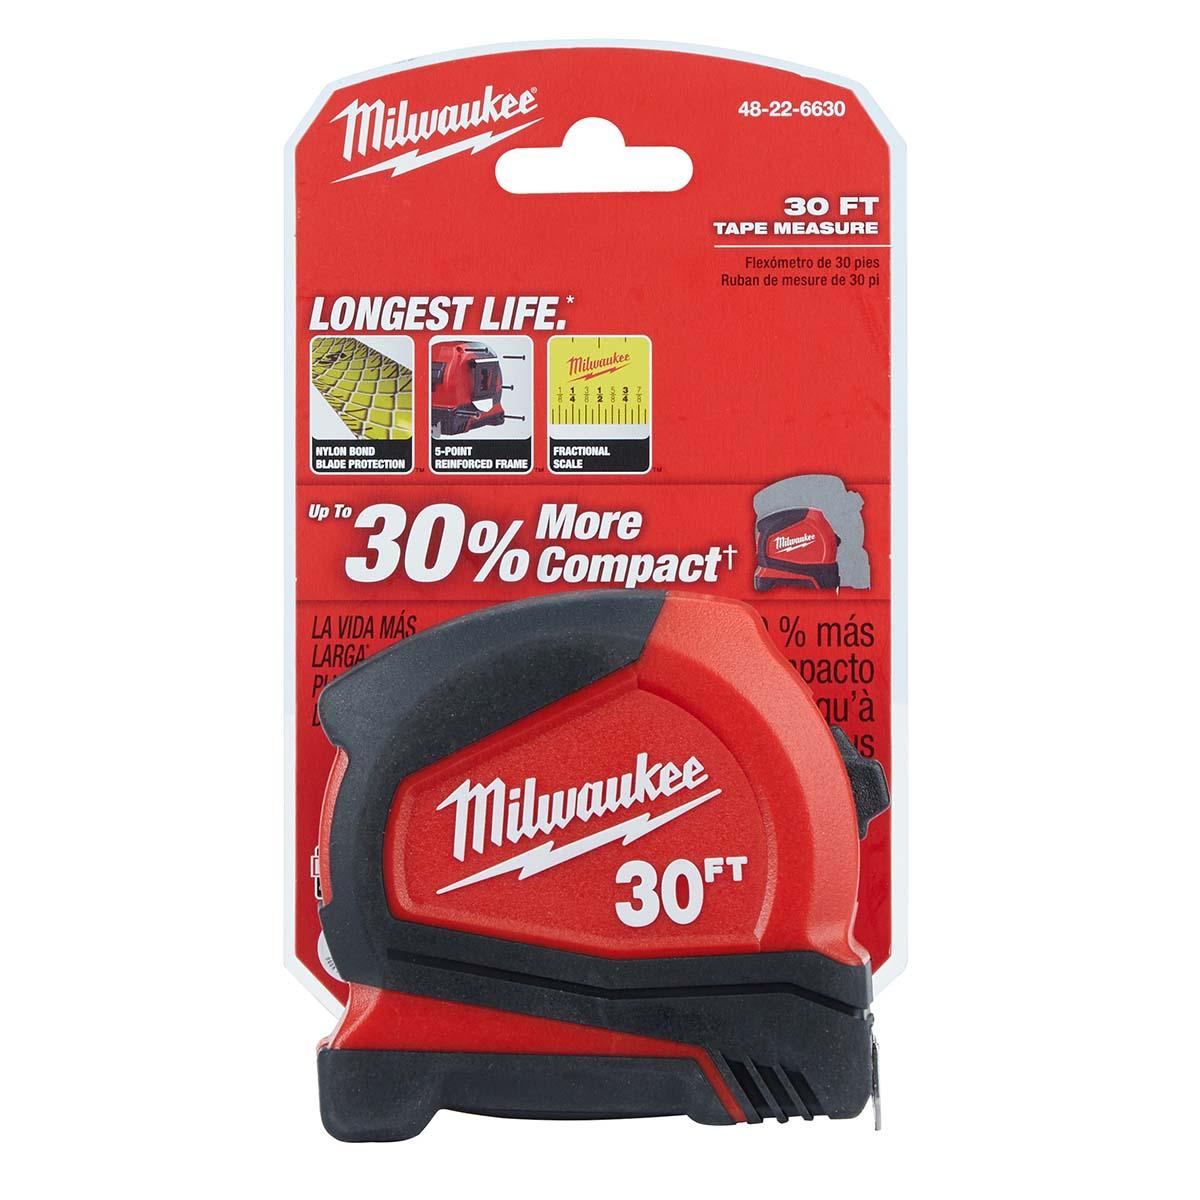 30' Compact Tape Measure